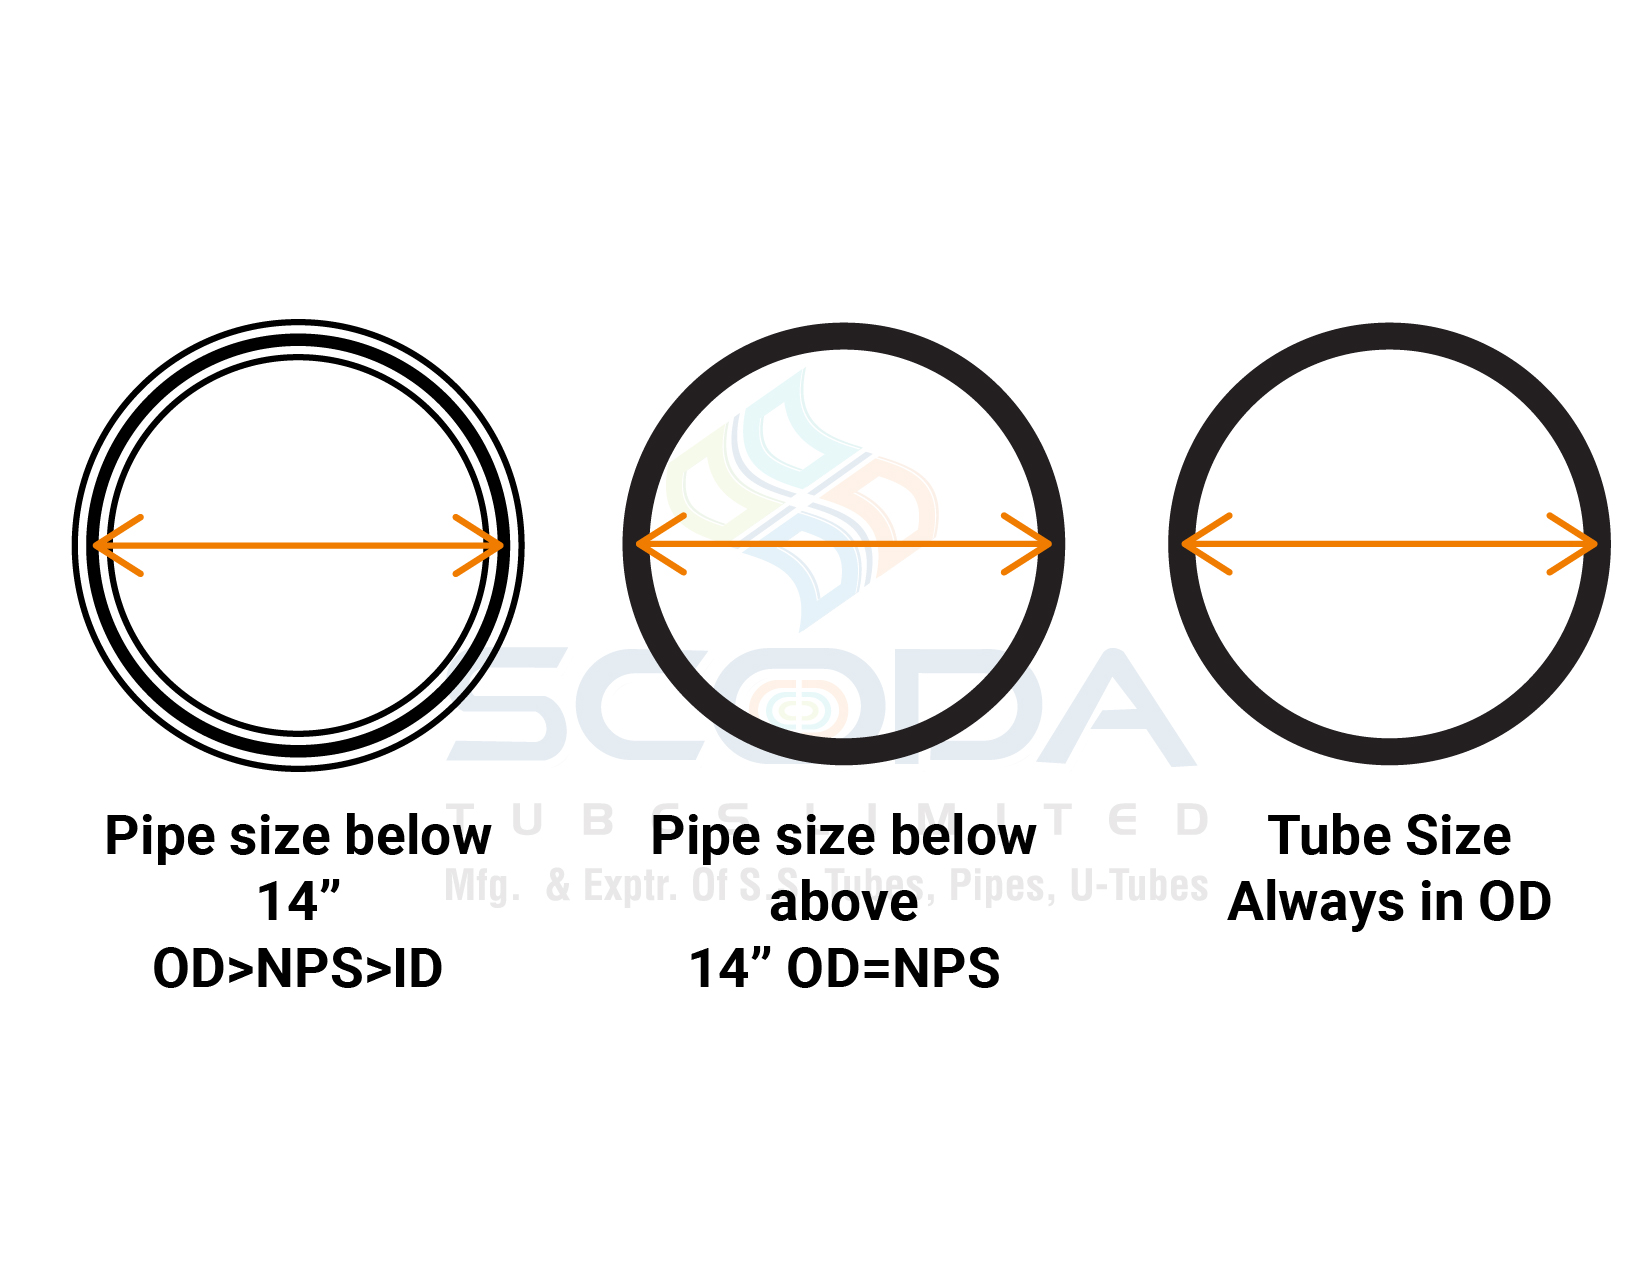 Contrast in the way size mentioned - Scoda Tubes Ltd